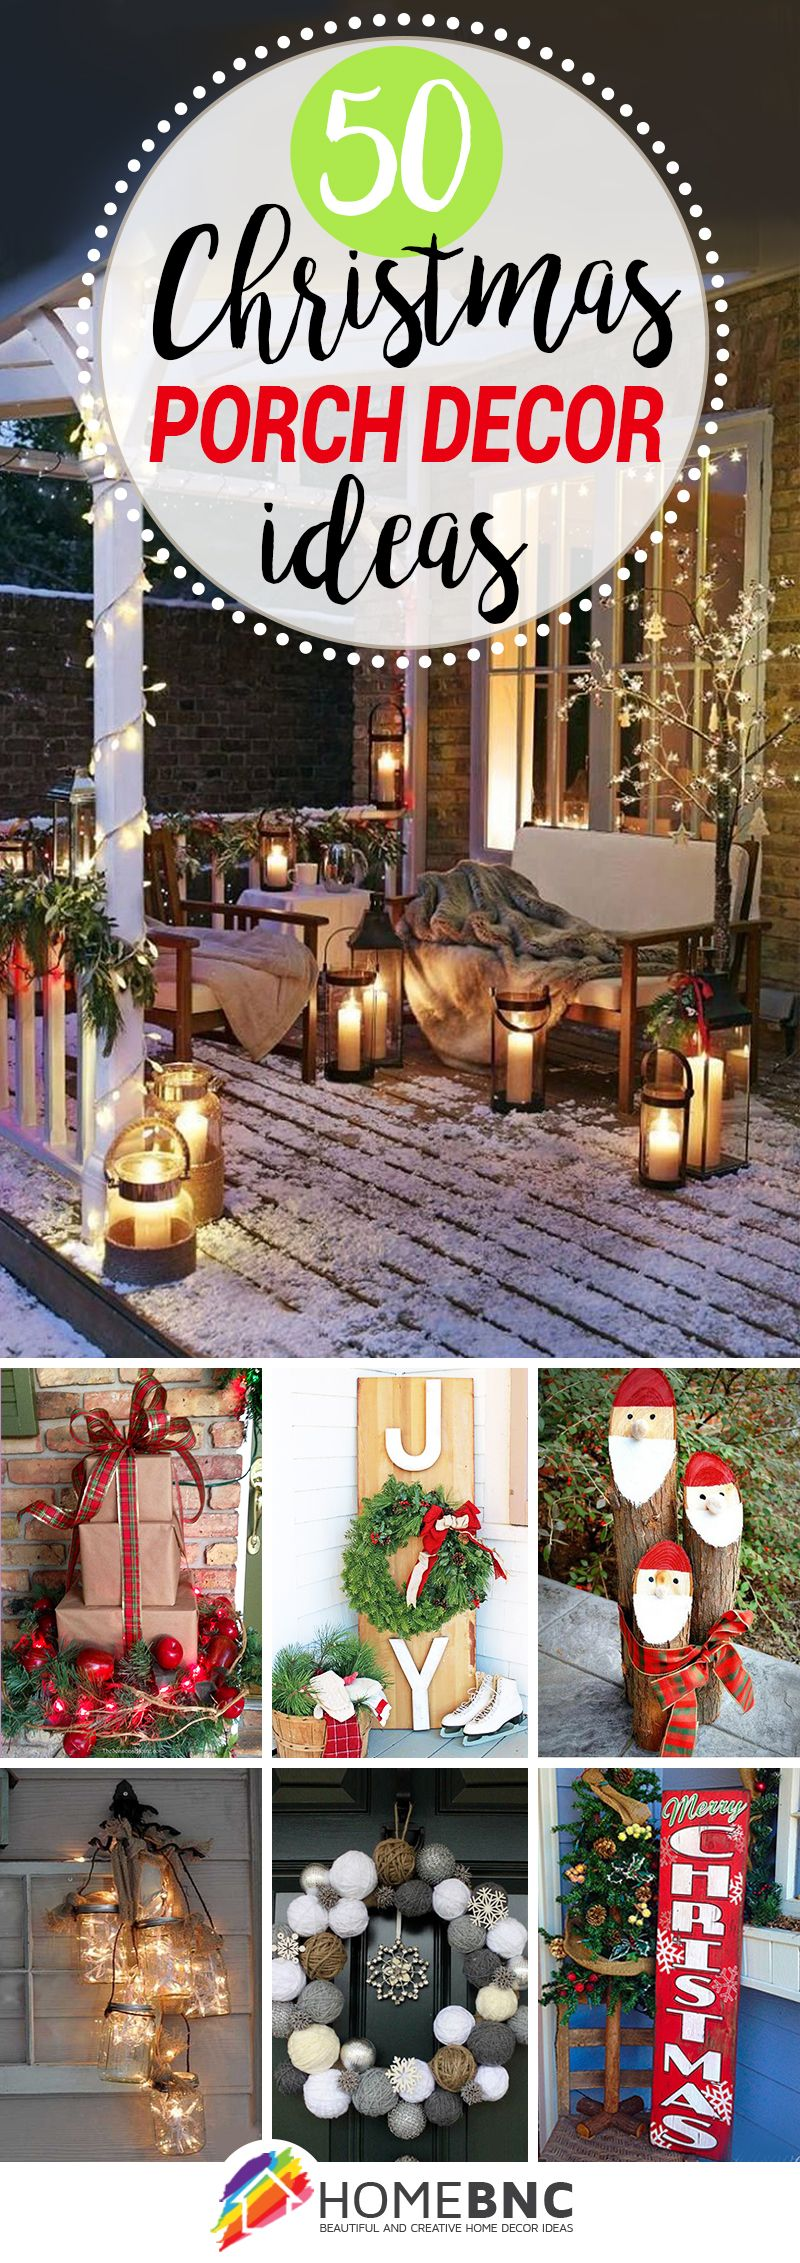 Christmas decoration man falling off roof - 50 Fun And Festive Ways To Decorate Your Porch For Christmas